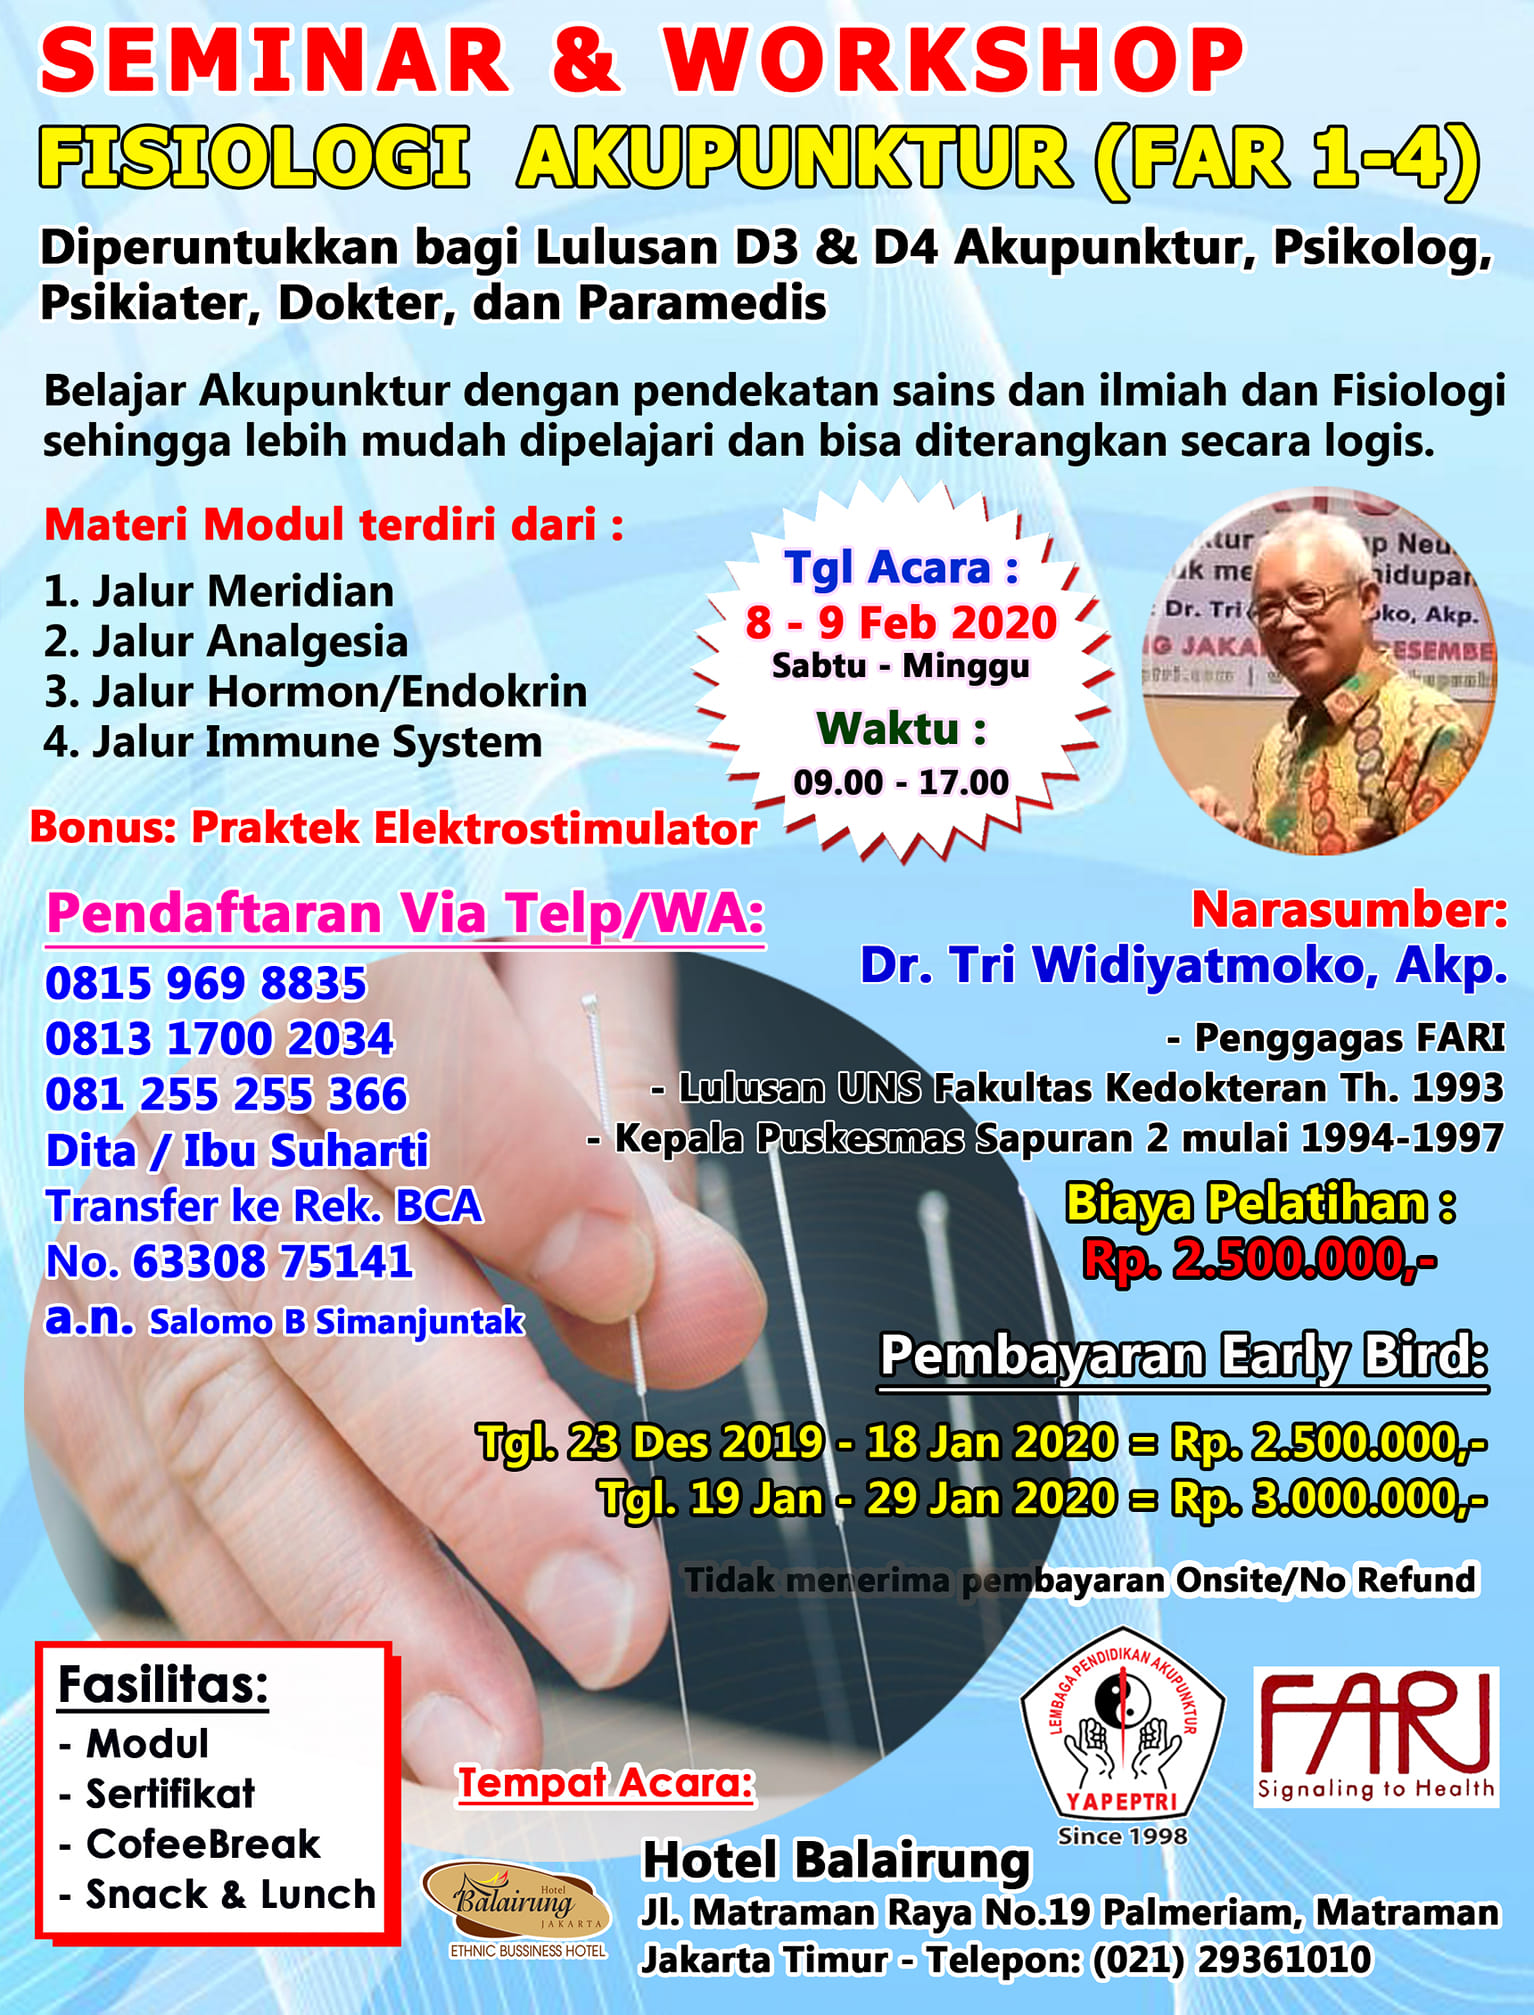 Seminar & Workshop Fisiologi Akupunktur (FAR 1-4)